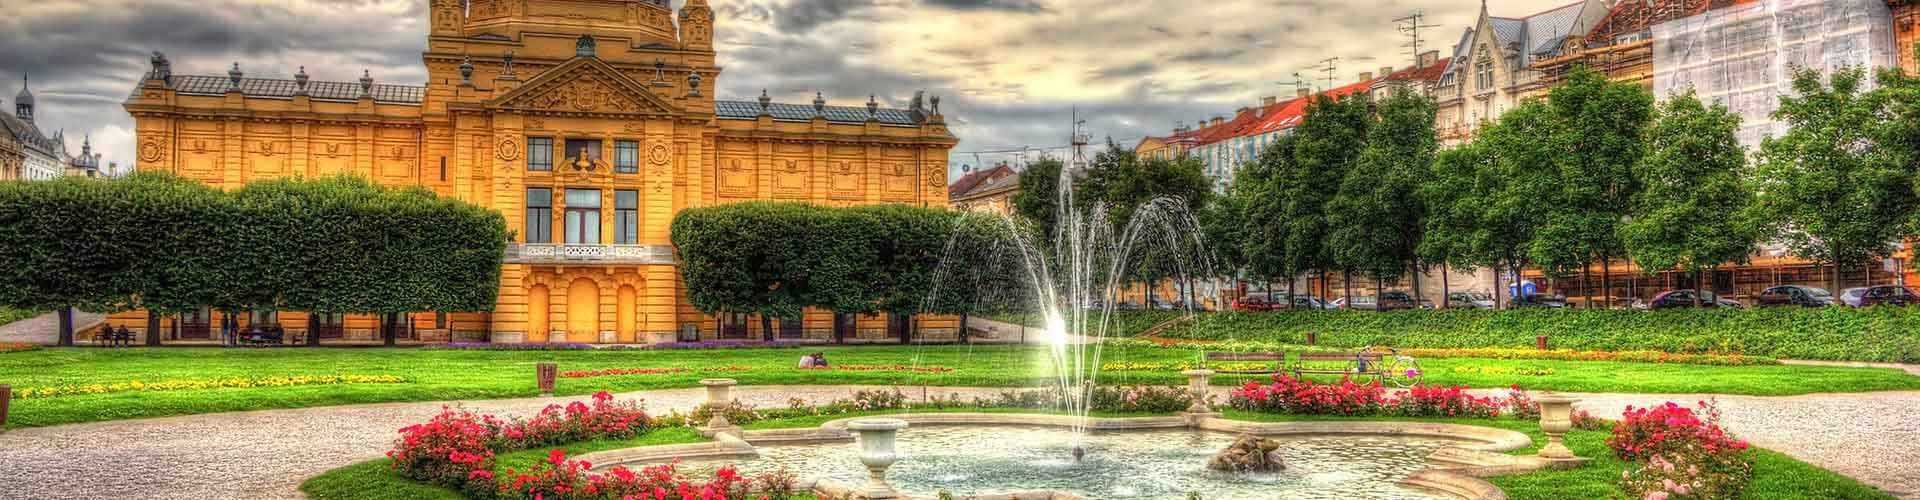 Zagreb – Hostels in Zagreb. Maps for Zagreb, Photos and Reviews for each hostel in Zagreb.